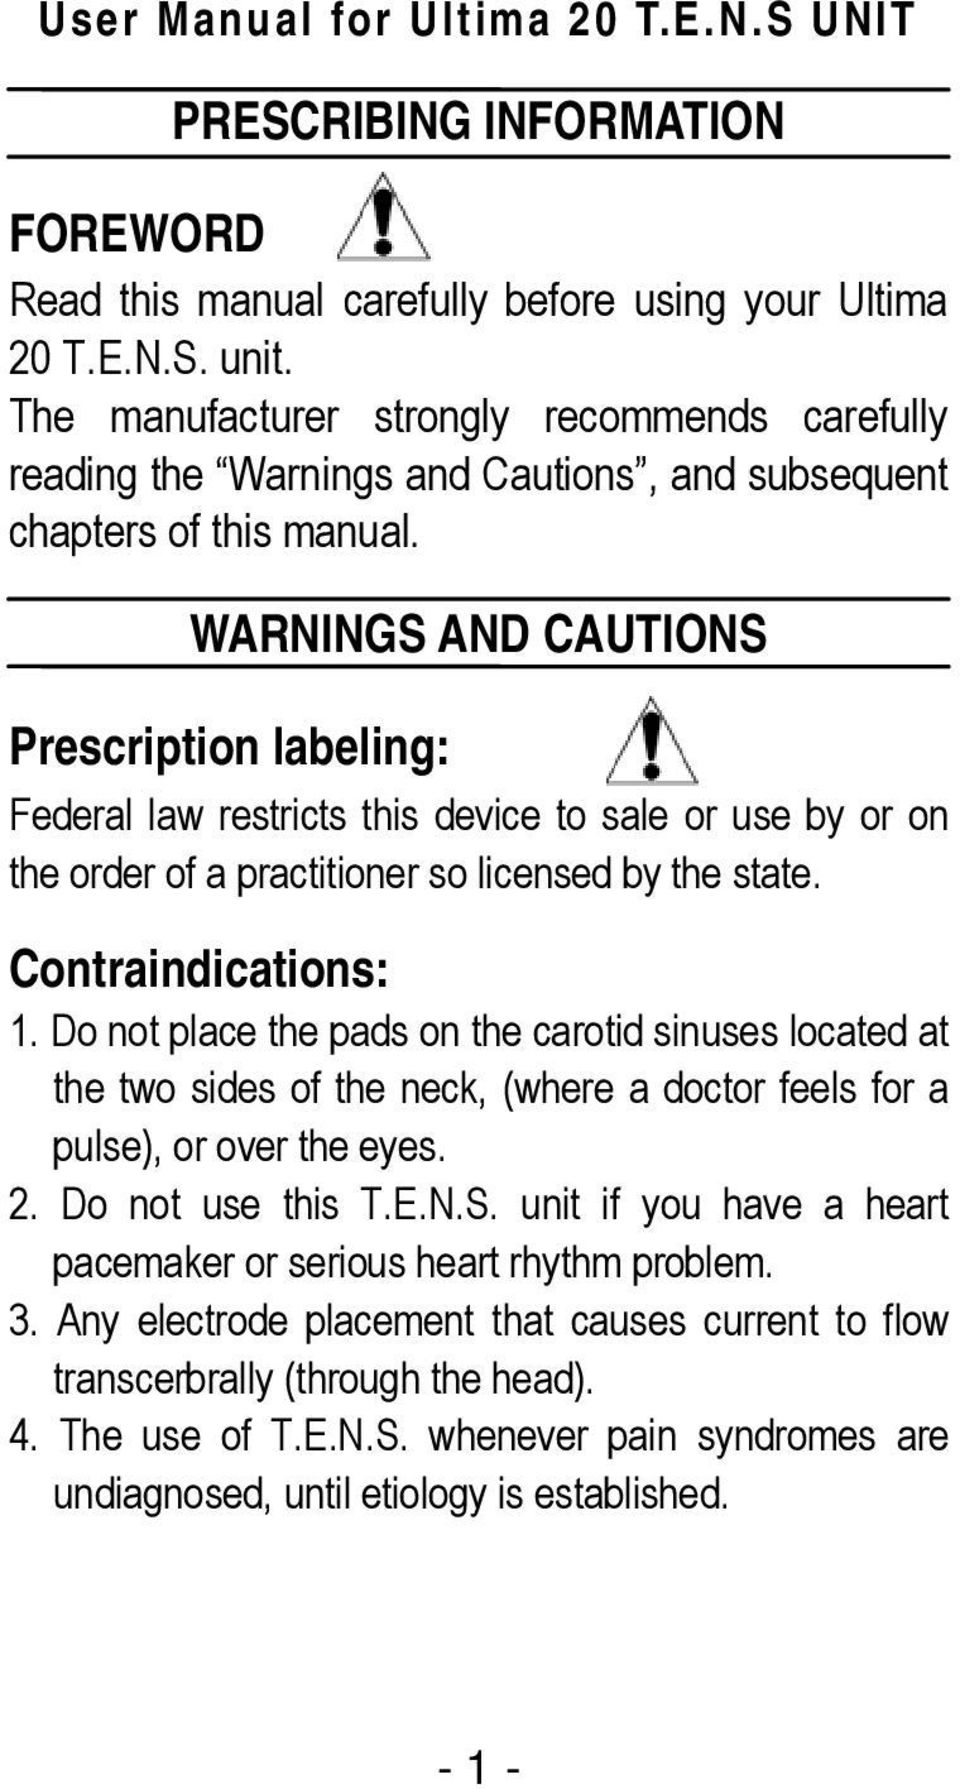 WARNINGS AND CAUTIONS Prescription labeling: Federal law restricts this device to sale or use by or on the order of a practitioner so licensed by the state. Contraindications: 1.